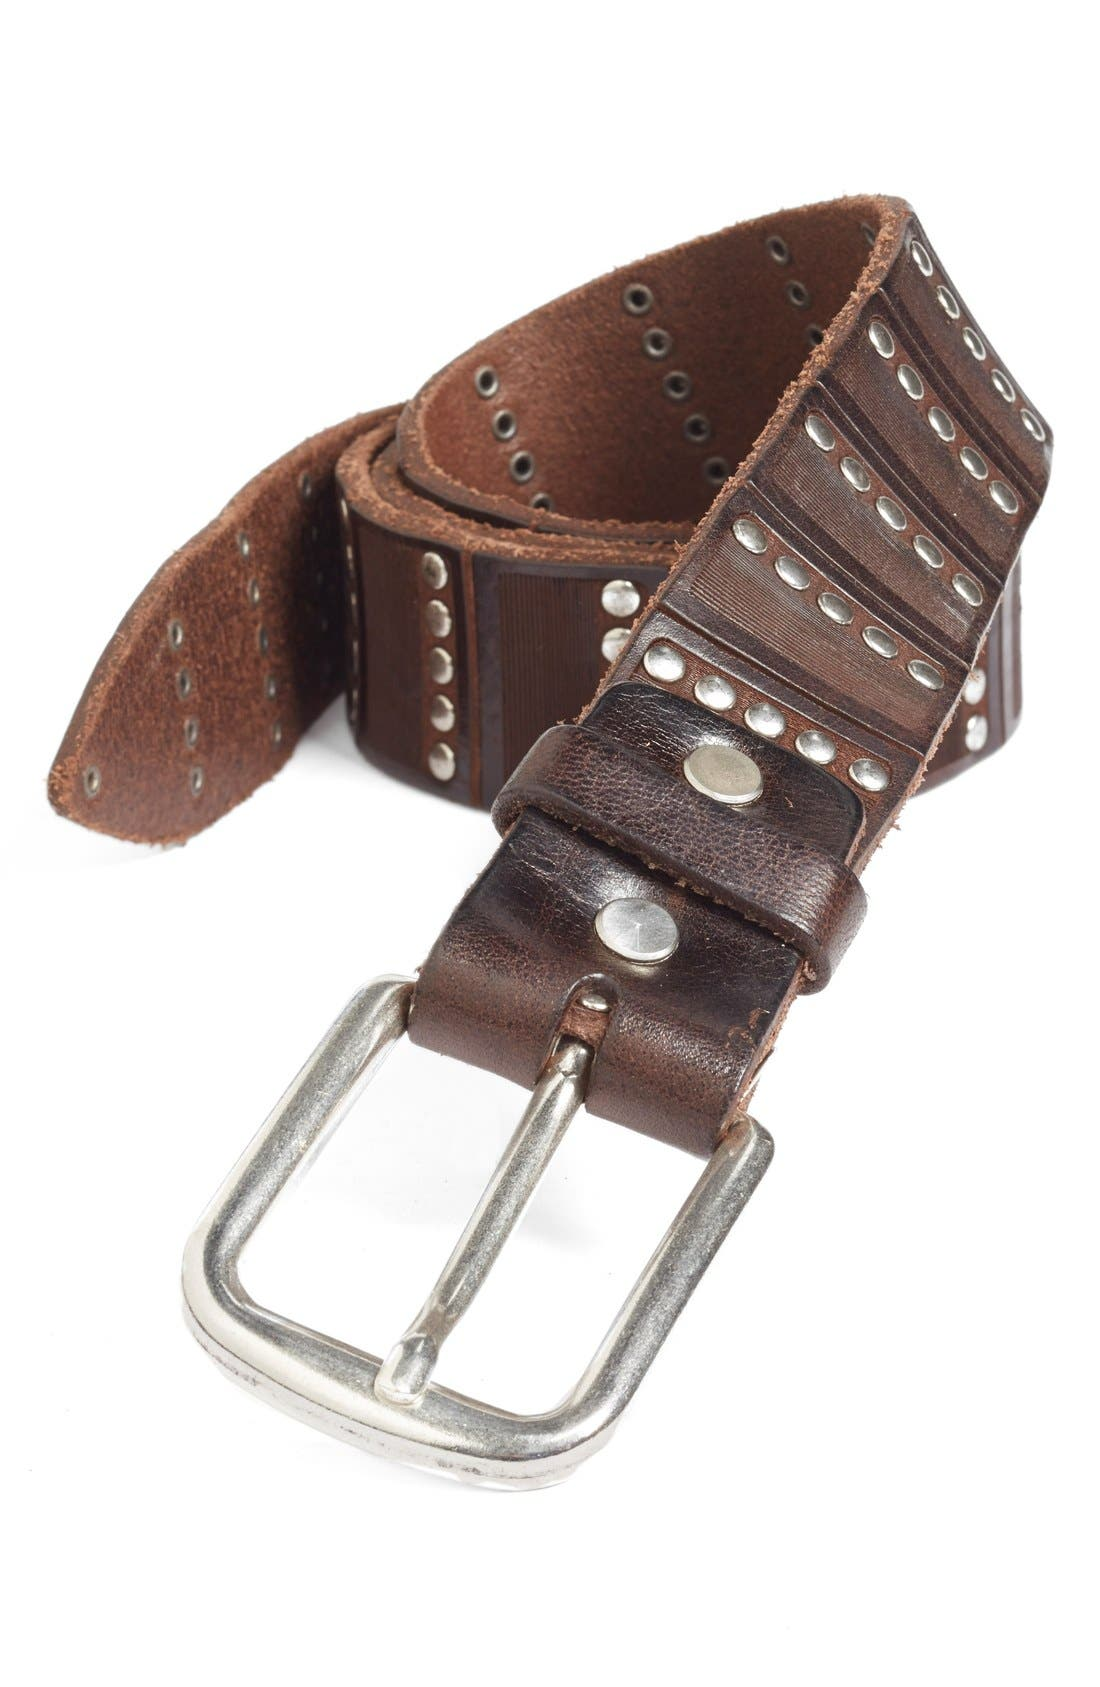 Alternate Image 1 Selected - Remo Tulliani 'Santino' Leather Belt